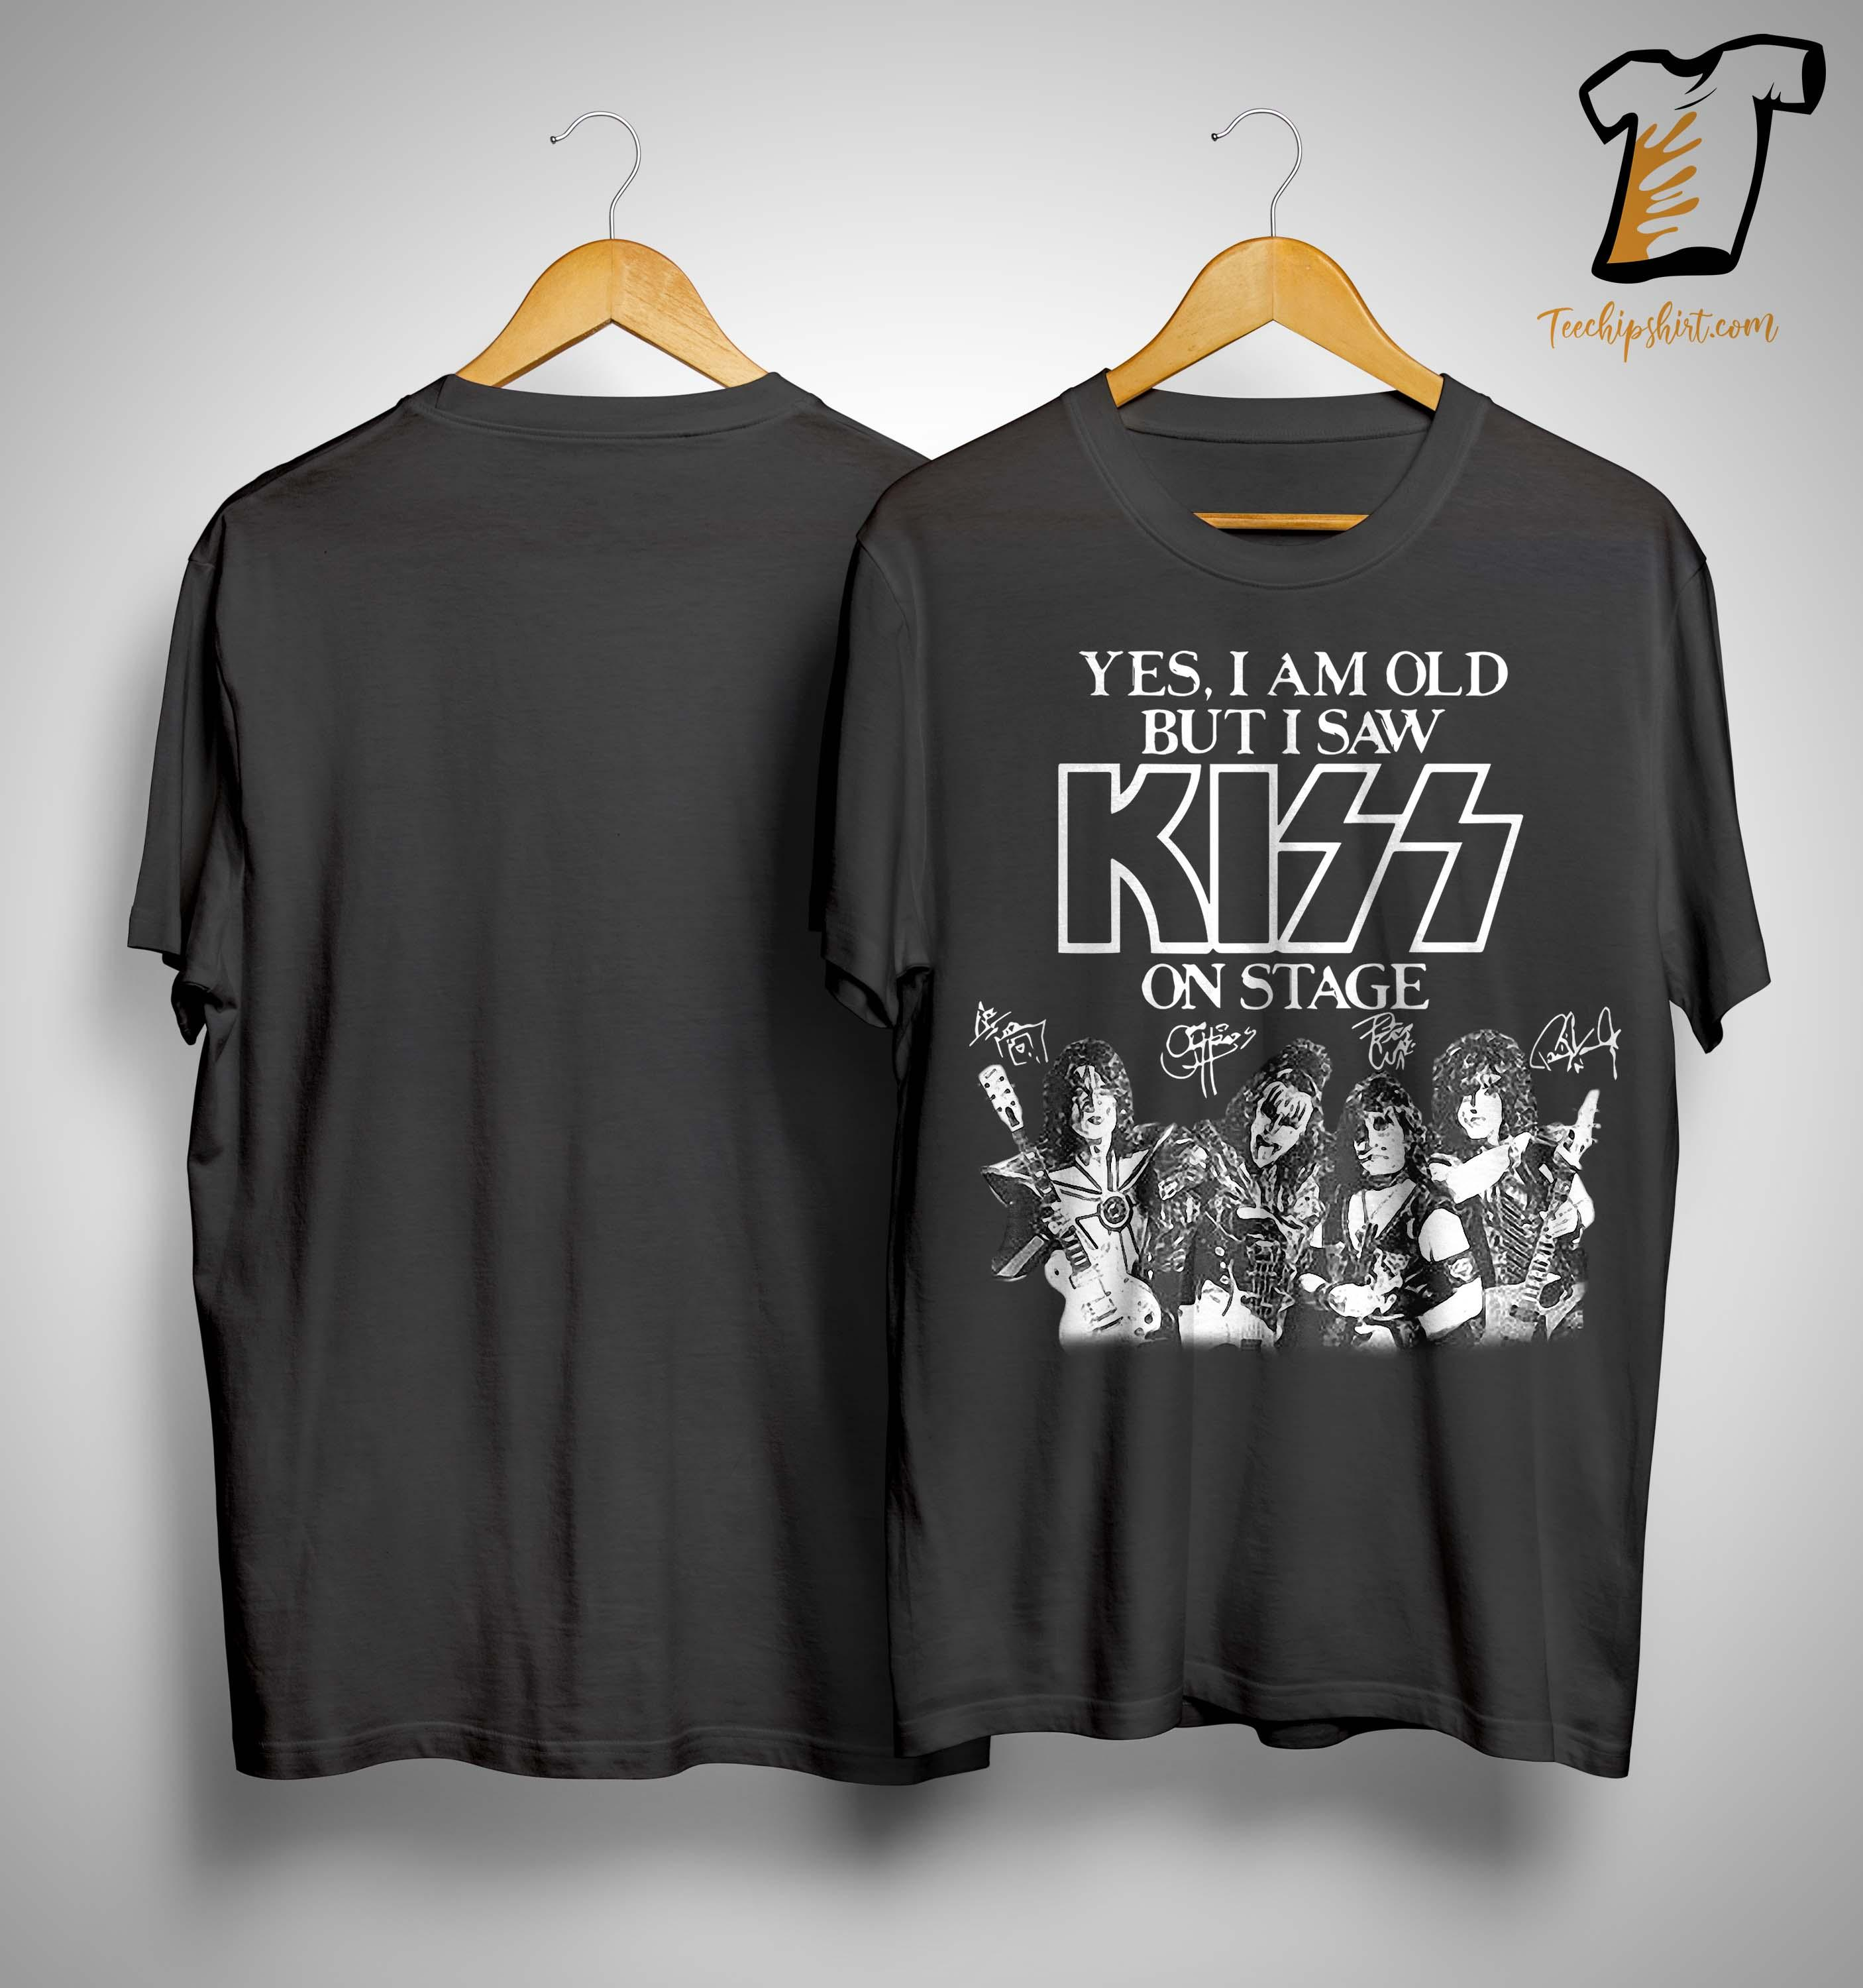 Yes I Am Old But I Saw Kiss On Stage Shirt